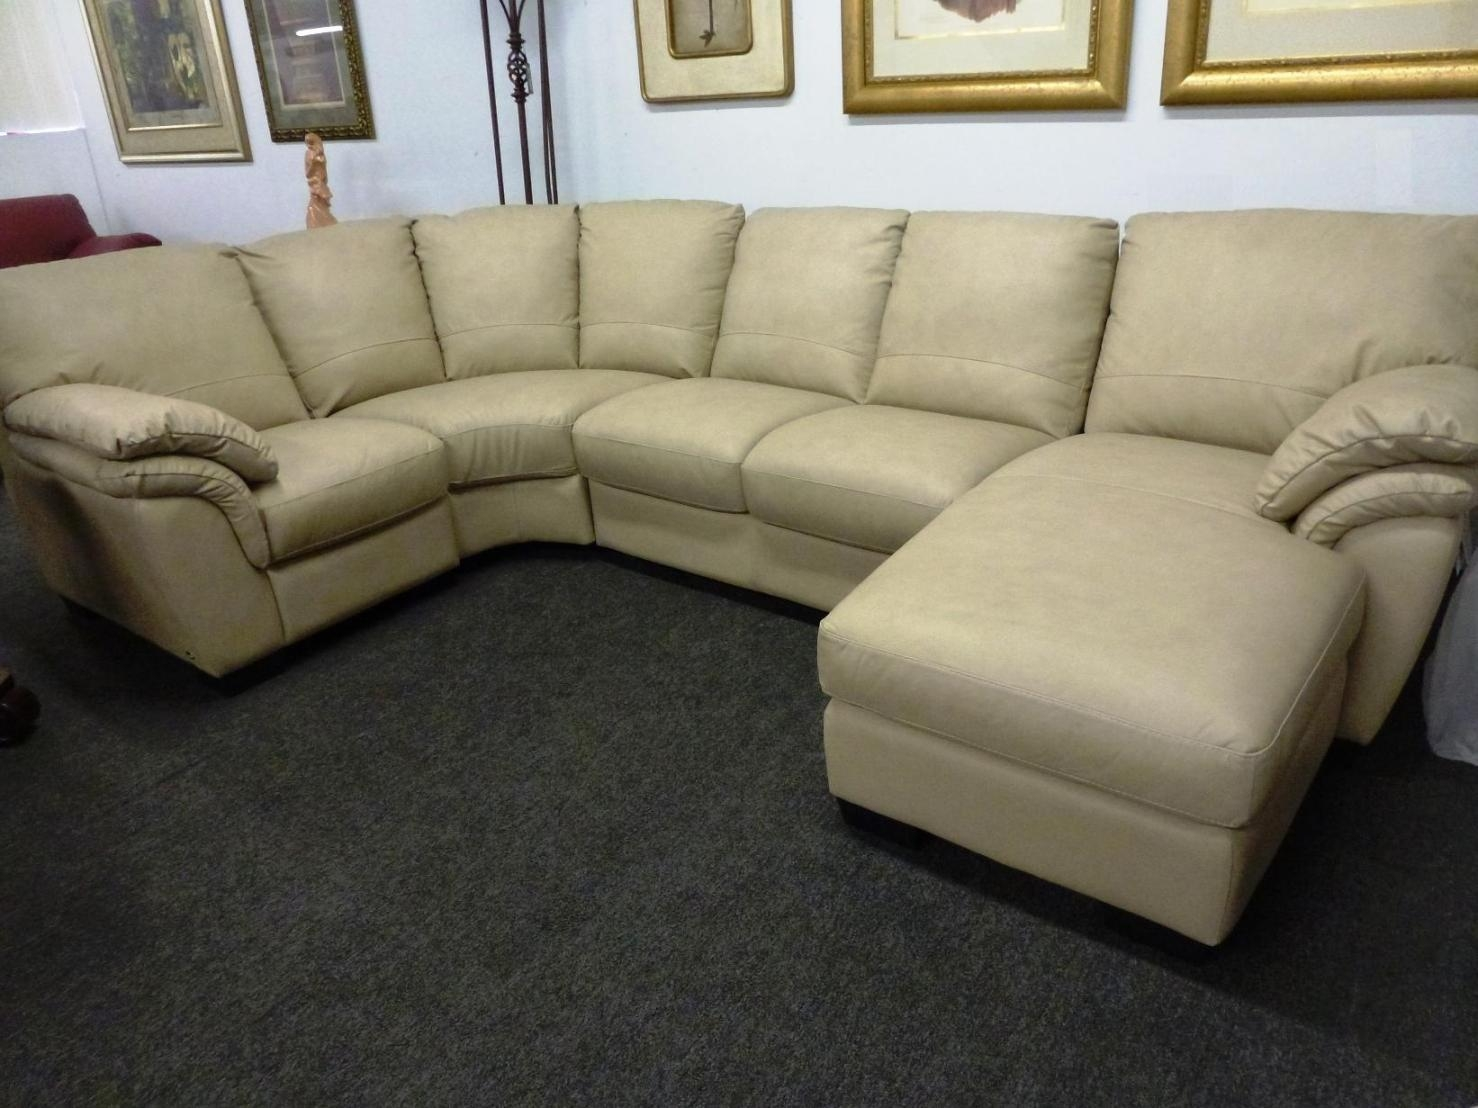 Sofa & Couch: Sectional Couches For Sale To Fit Your Living Room For Leather Sofa Sectionals For Sale (Image 15 of 20)